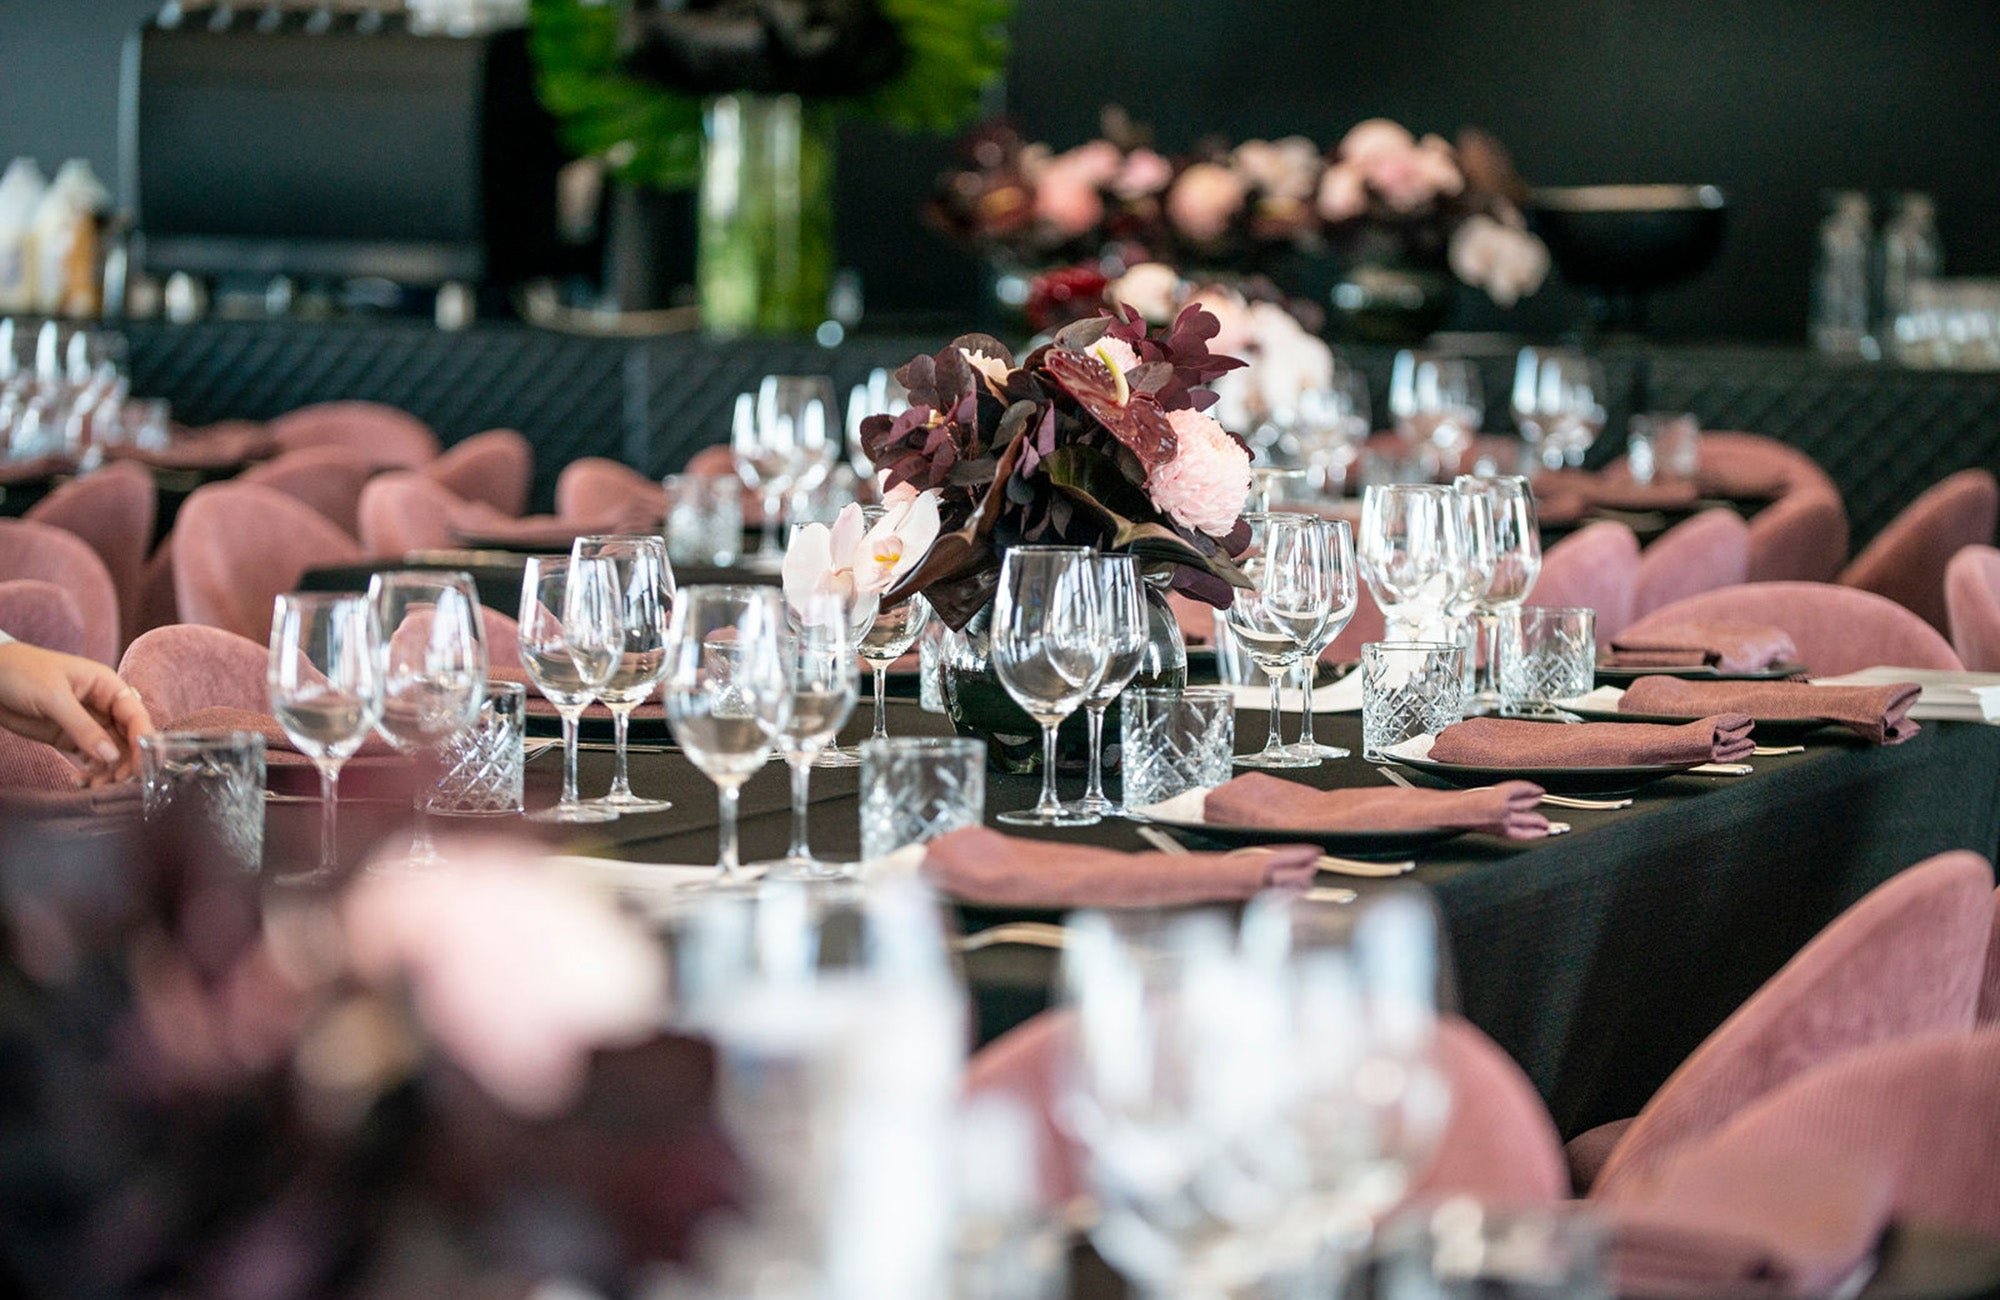 Table settings at Porsche women with drive event